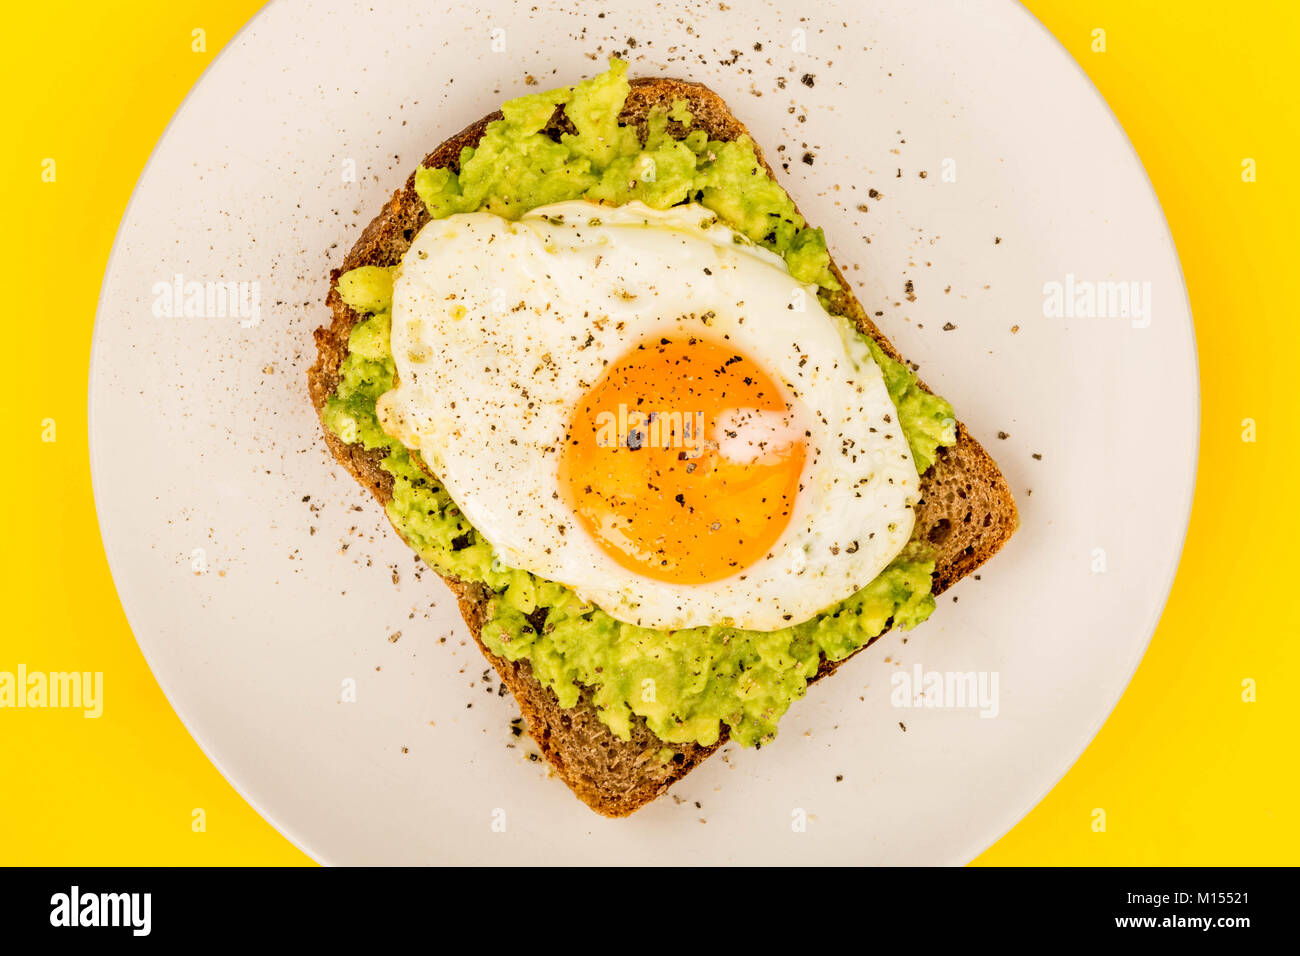 Fried Egg Sunny Side Up on Crushed Avocado And Rye Bread Open Faced Sandwich Against A Yellow Background - Stock Image